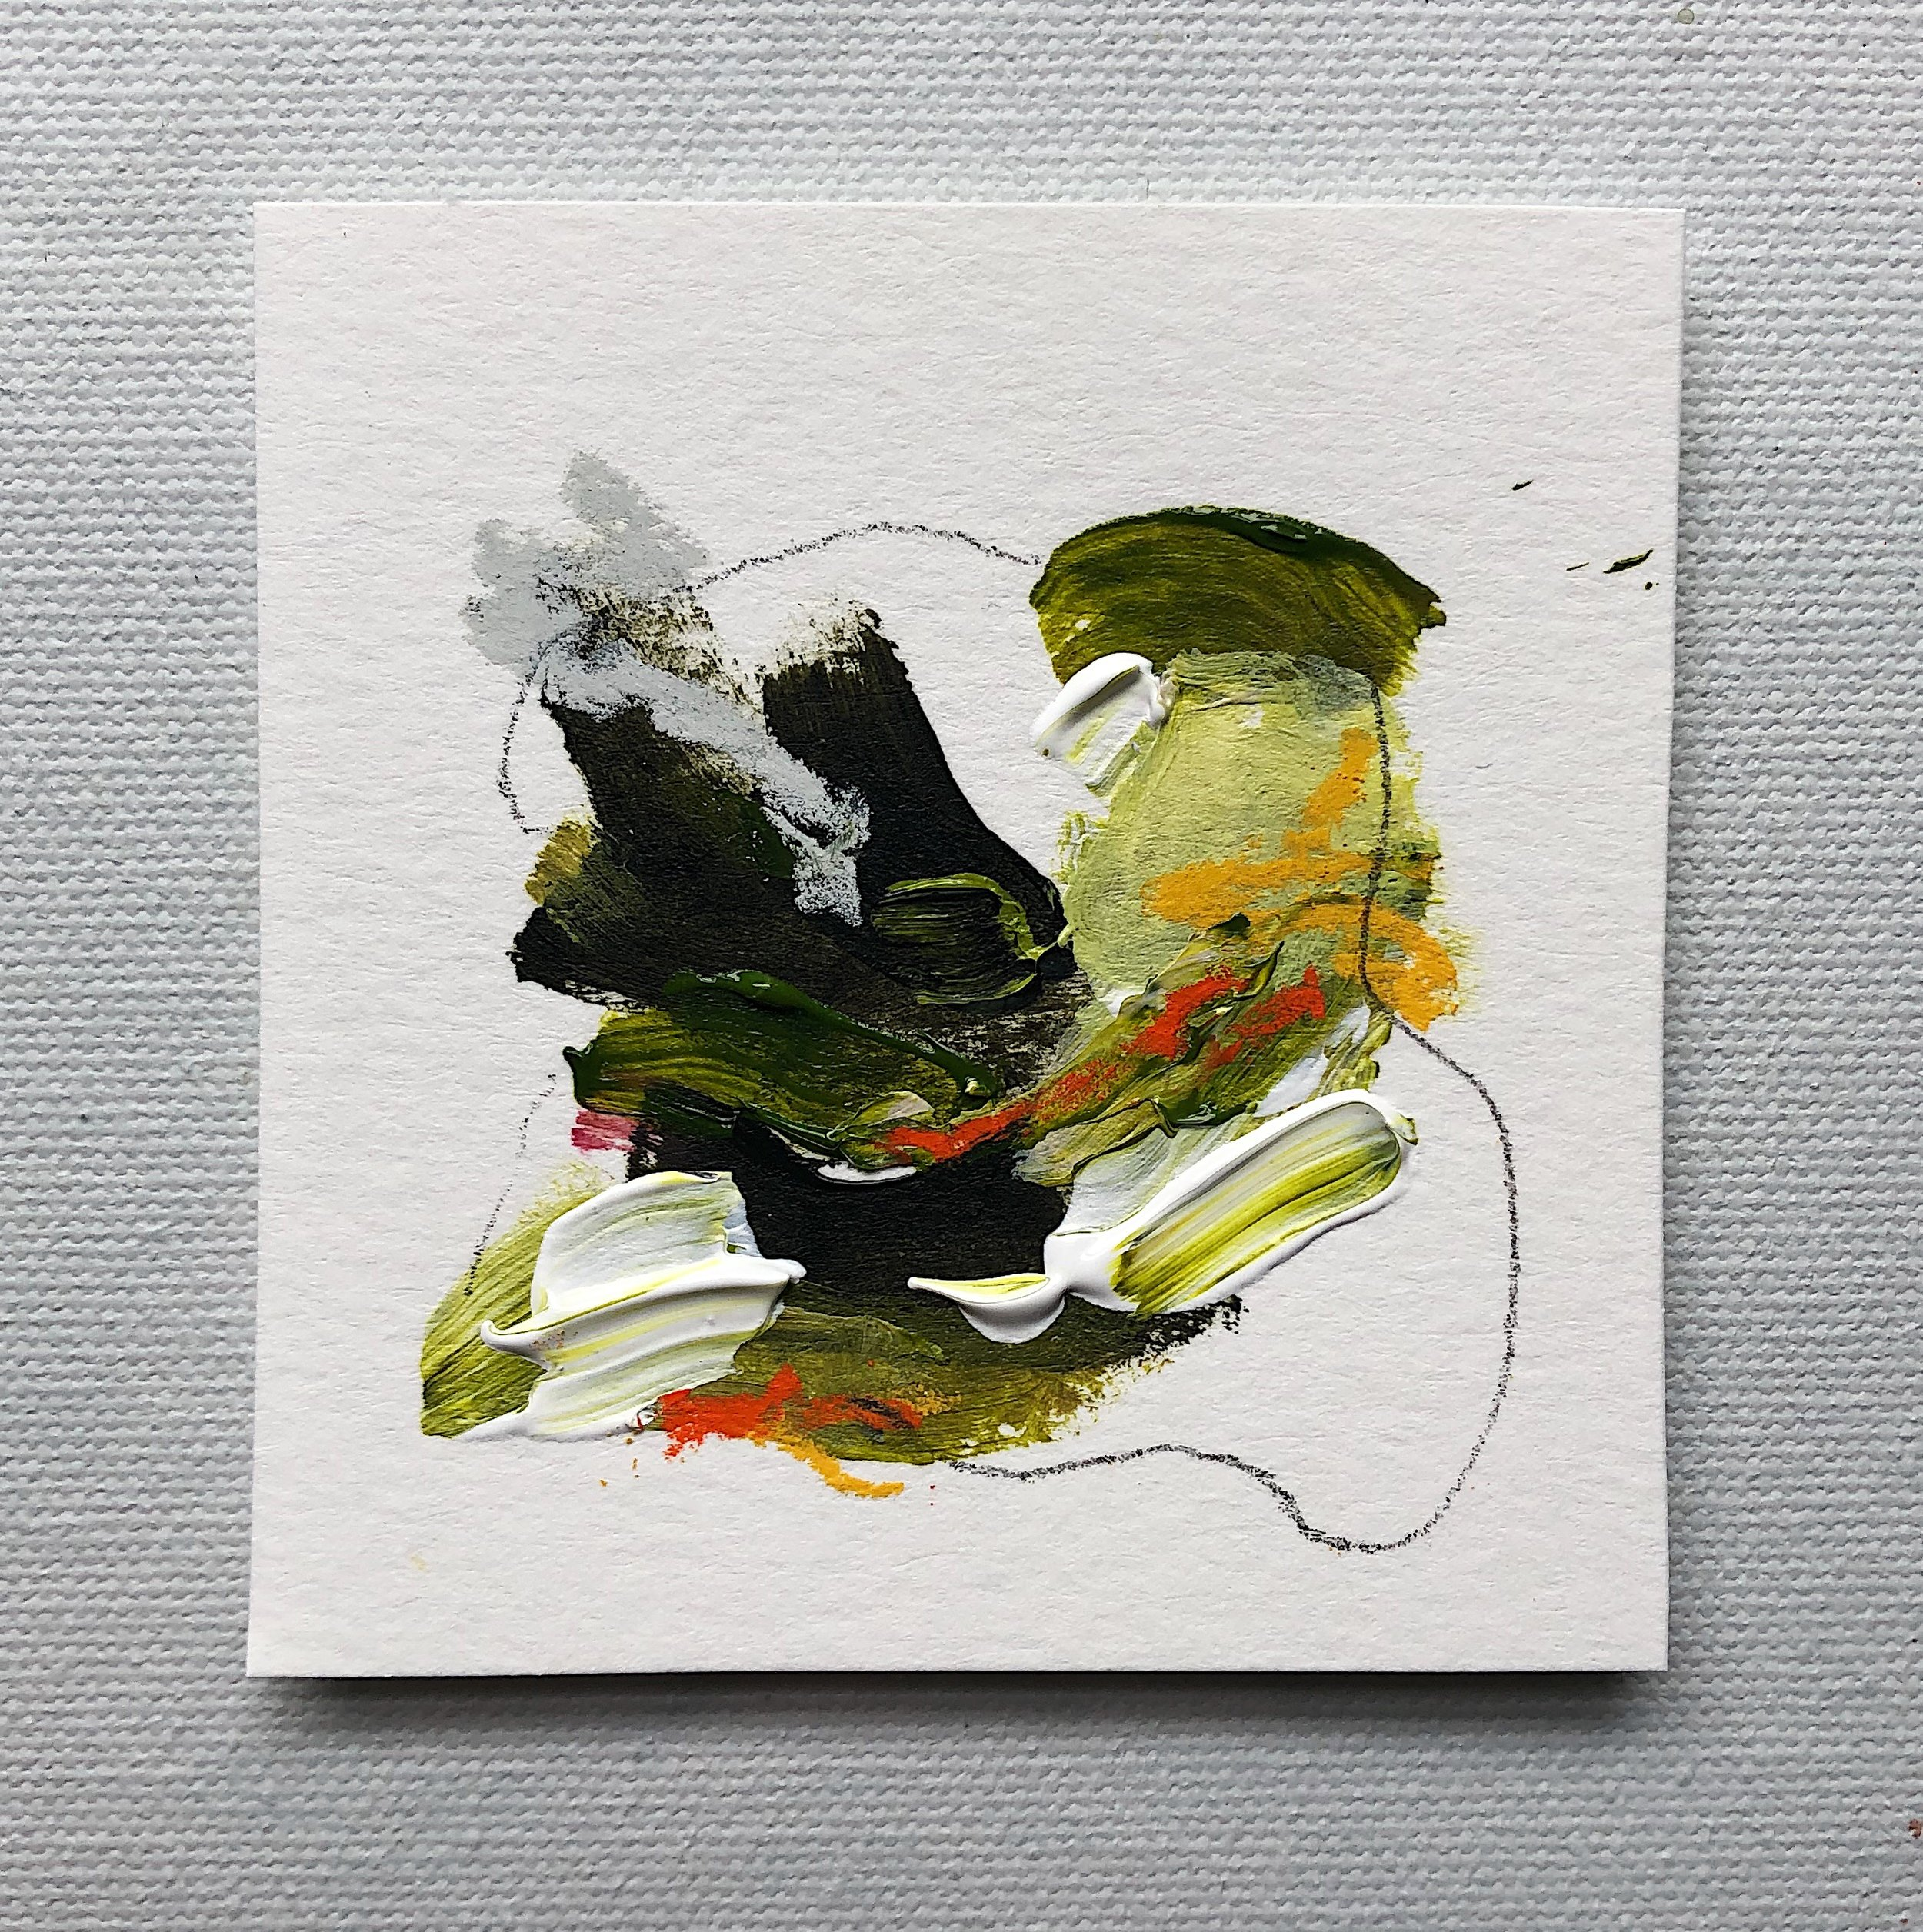 """Relief""  Original Acrylic Painting  - 3""x3"" / Acrylic, Pencil & Pastel on Paper  $25"